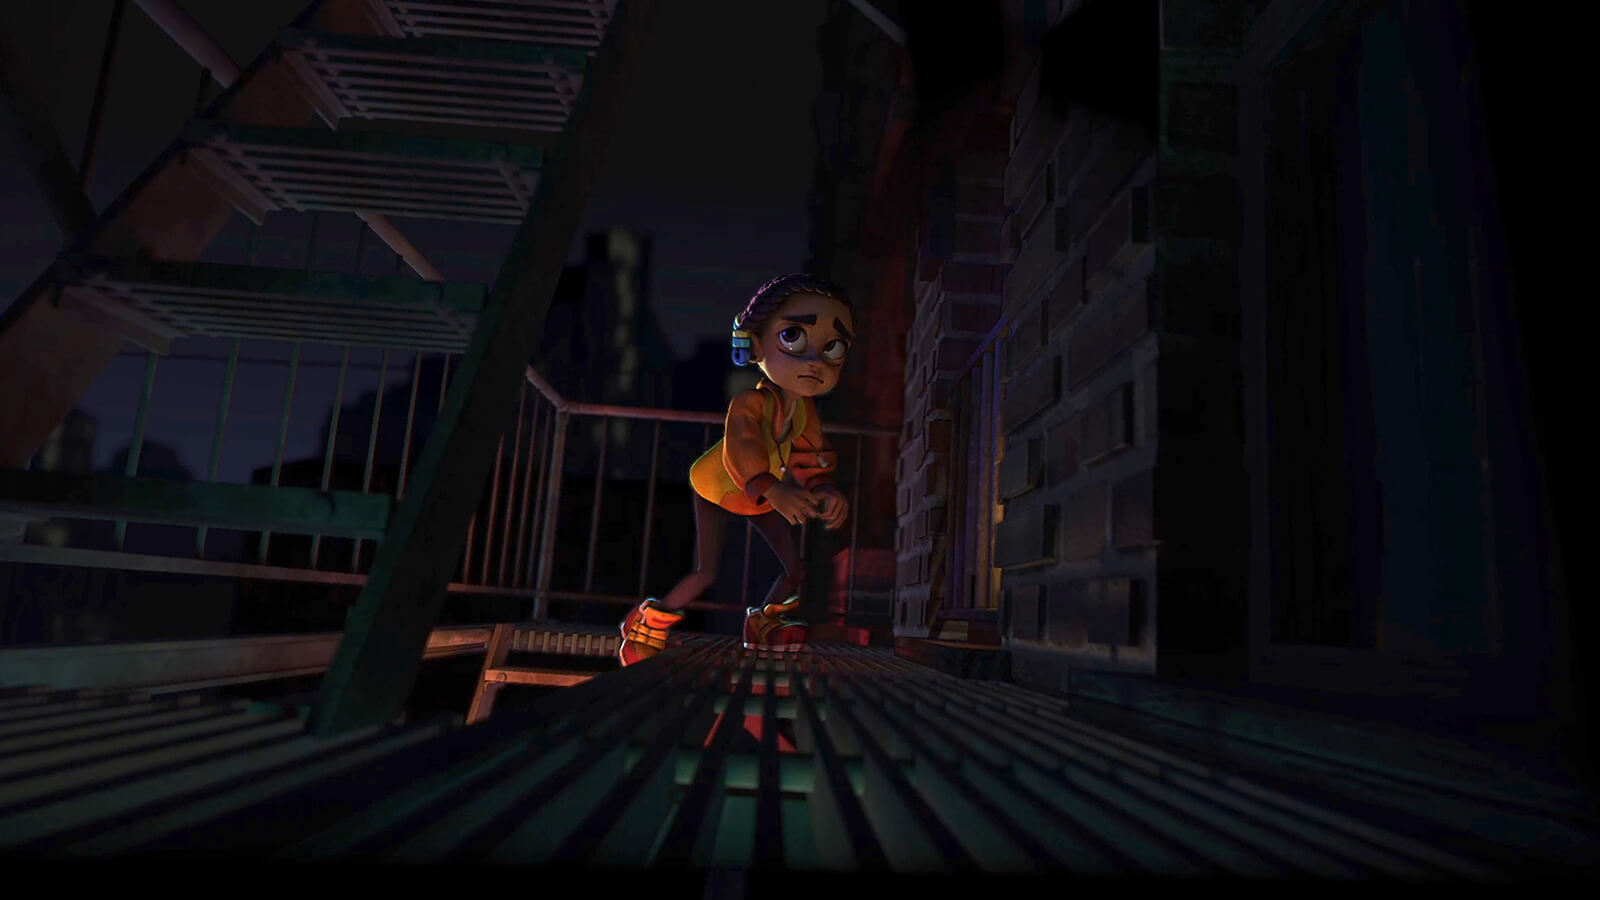 A young girl cautiously makes her way up a fire escape of an apartment building at night, lit dimly from below